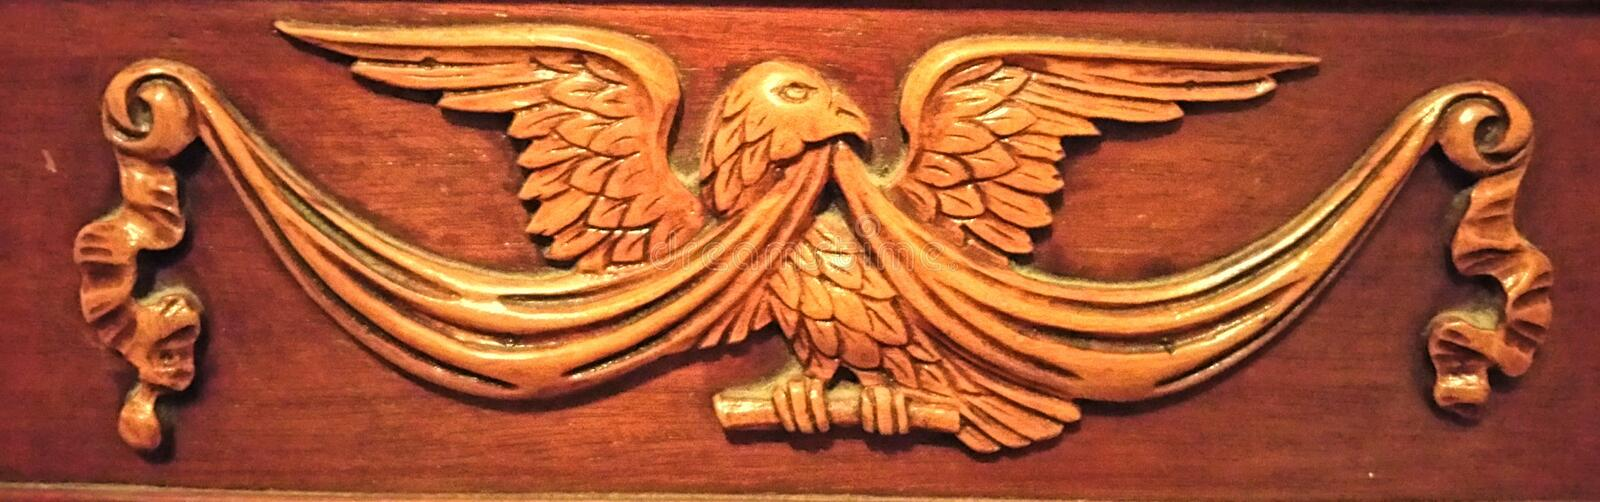 American Eagle Carving royalty free stock image